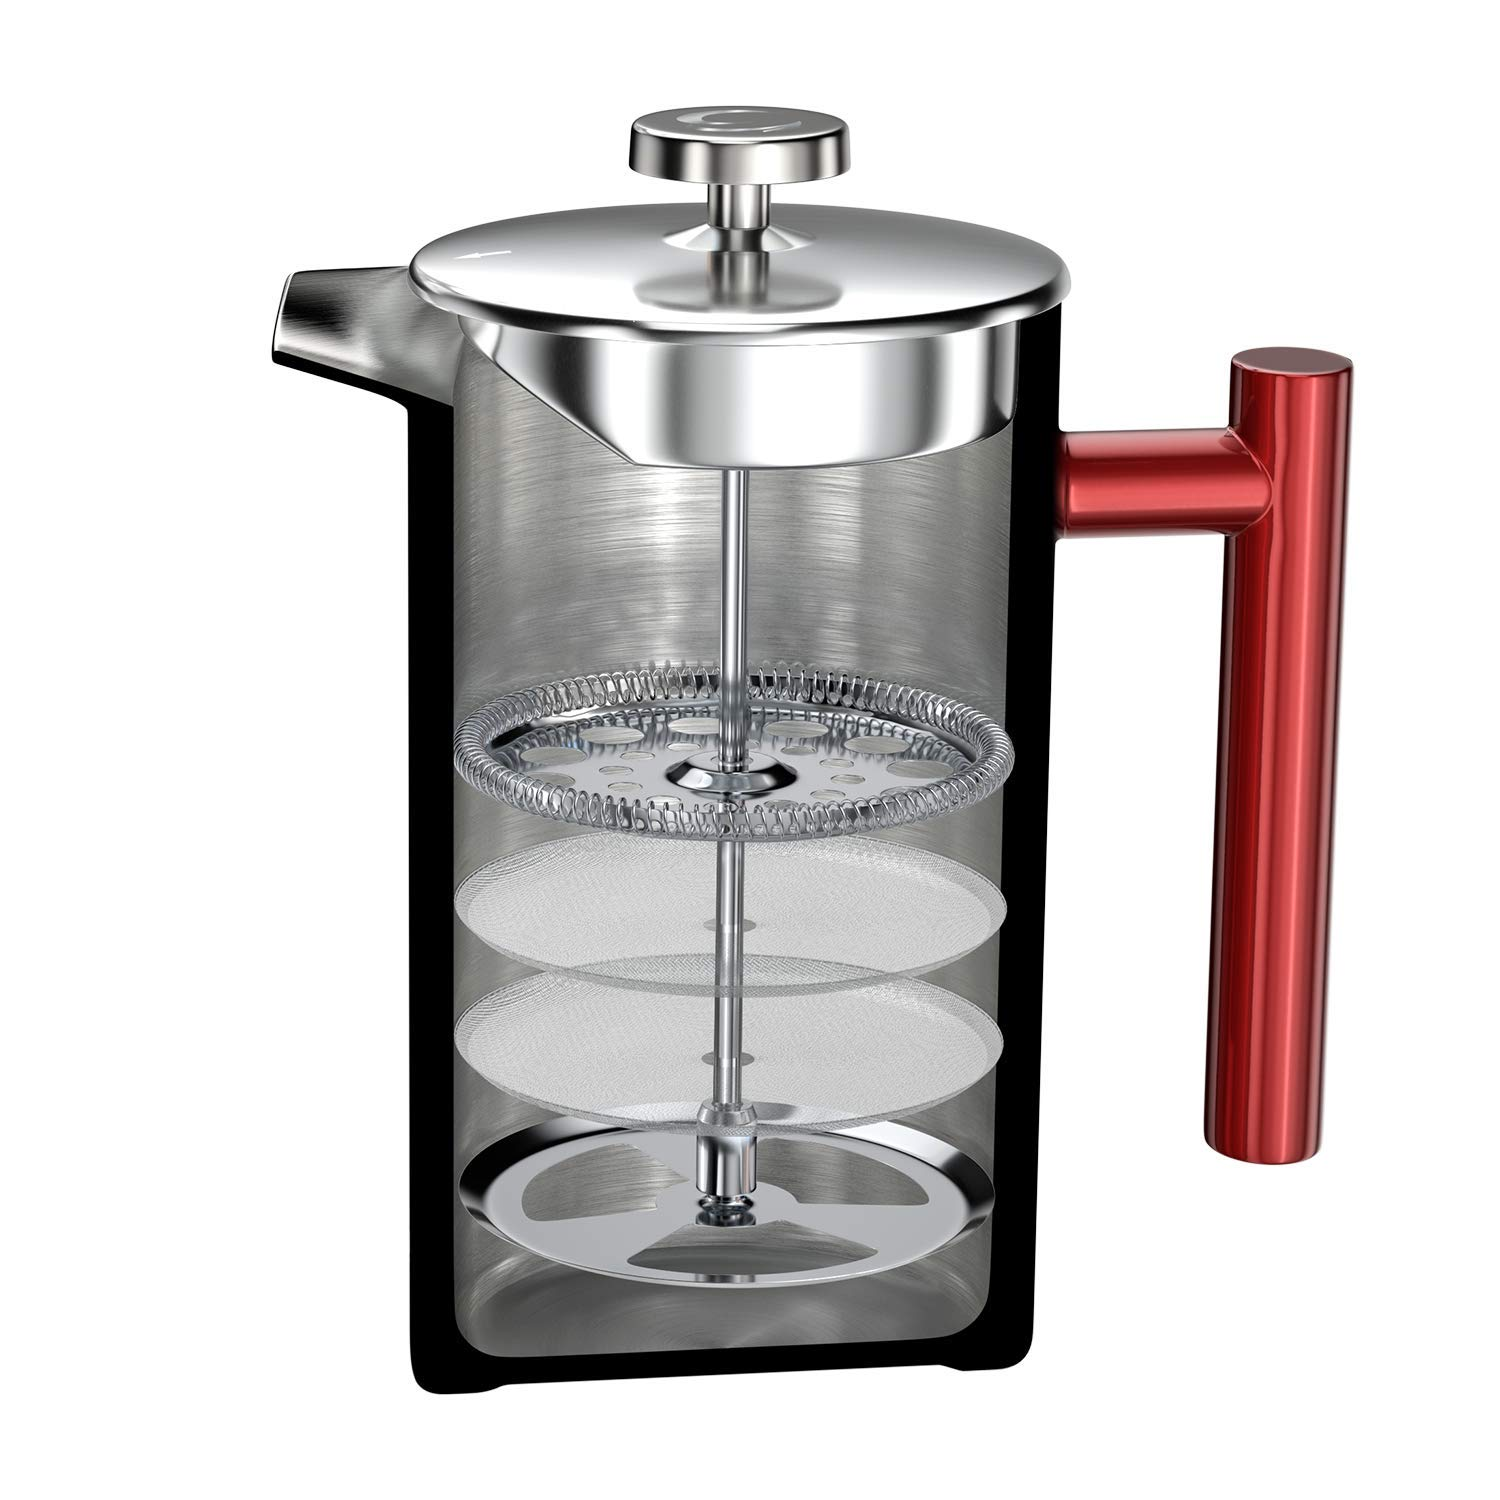 French Press Coffee Maker – 34 oz, Double-Wall 304 Stainless Steel Vacuum Insulated Tea Brewer Pot with 4 Level Filtration System – Extra 2pcs Filters Included – 8 Cup 1000ml Red